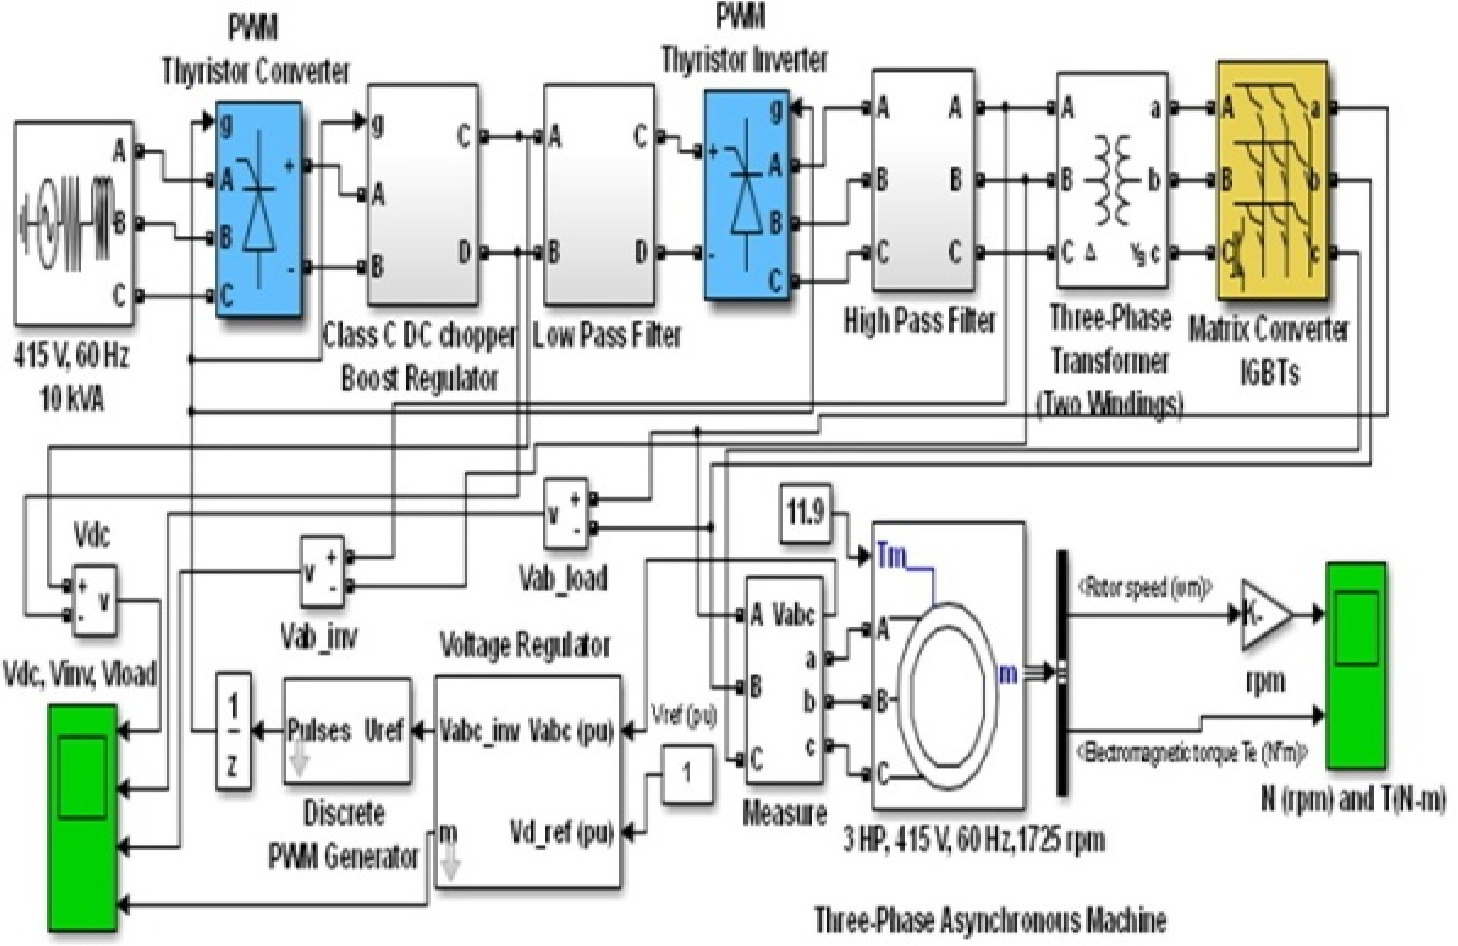 Design And Analysis Of The Power Electronic Transformer For Discrete Pwm Generator Circuit Quality Improvement Semantic Scholar